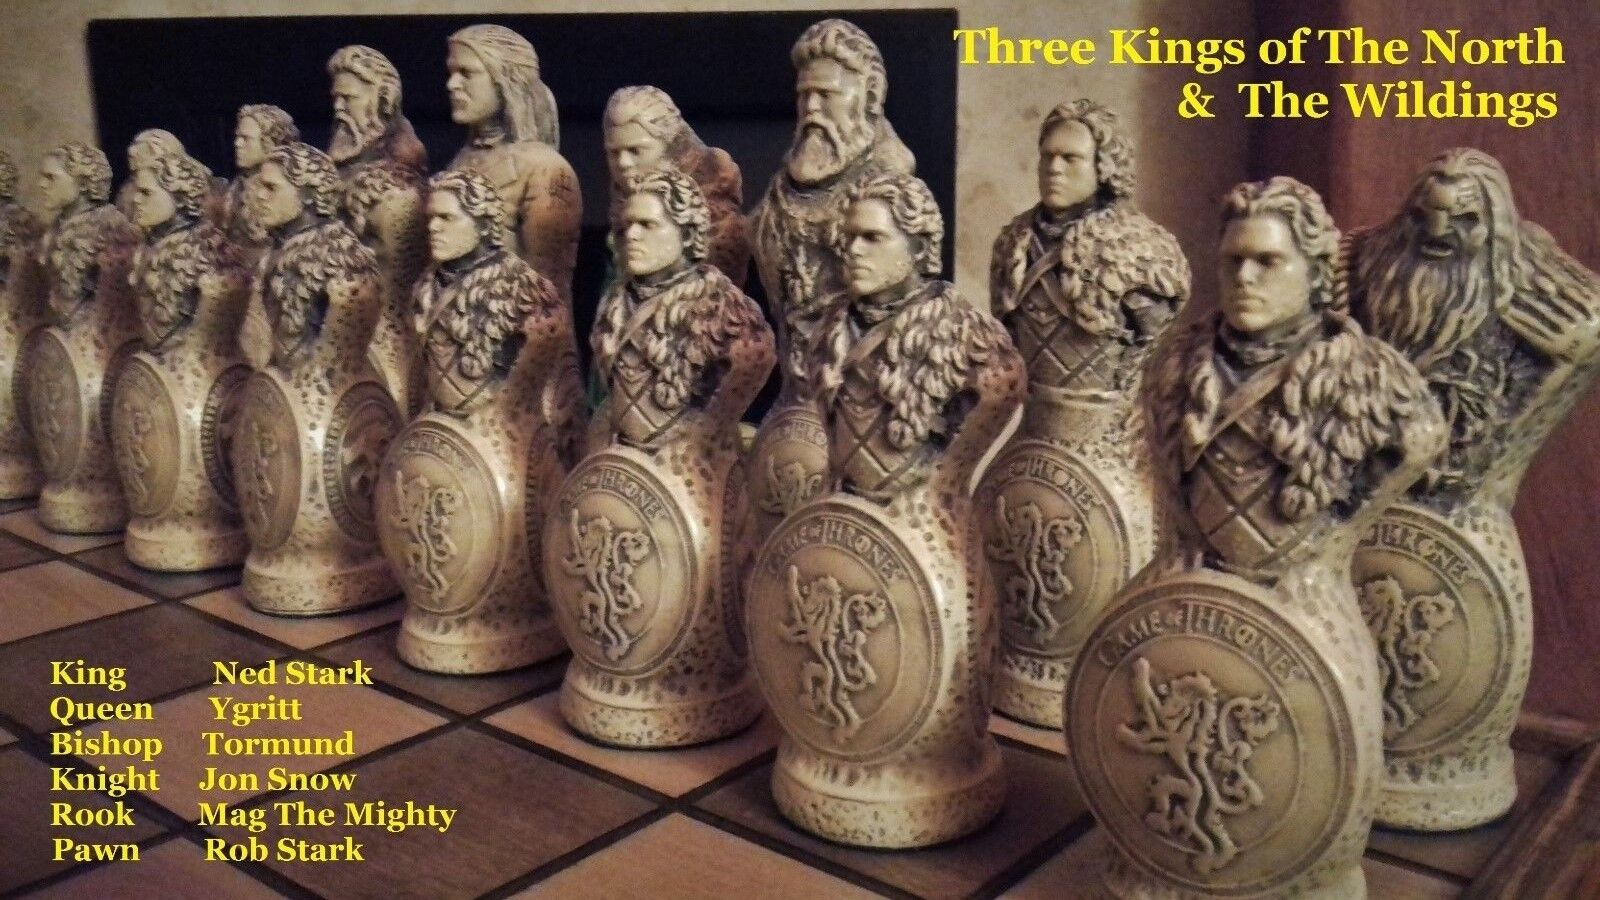 NEW    Ultimate Game Of Thrones EIGHT Sided Chess Set Collection & Chess Board